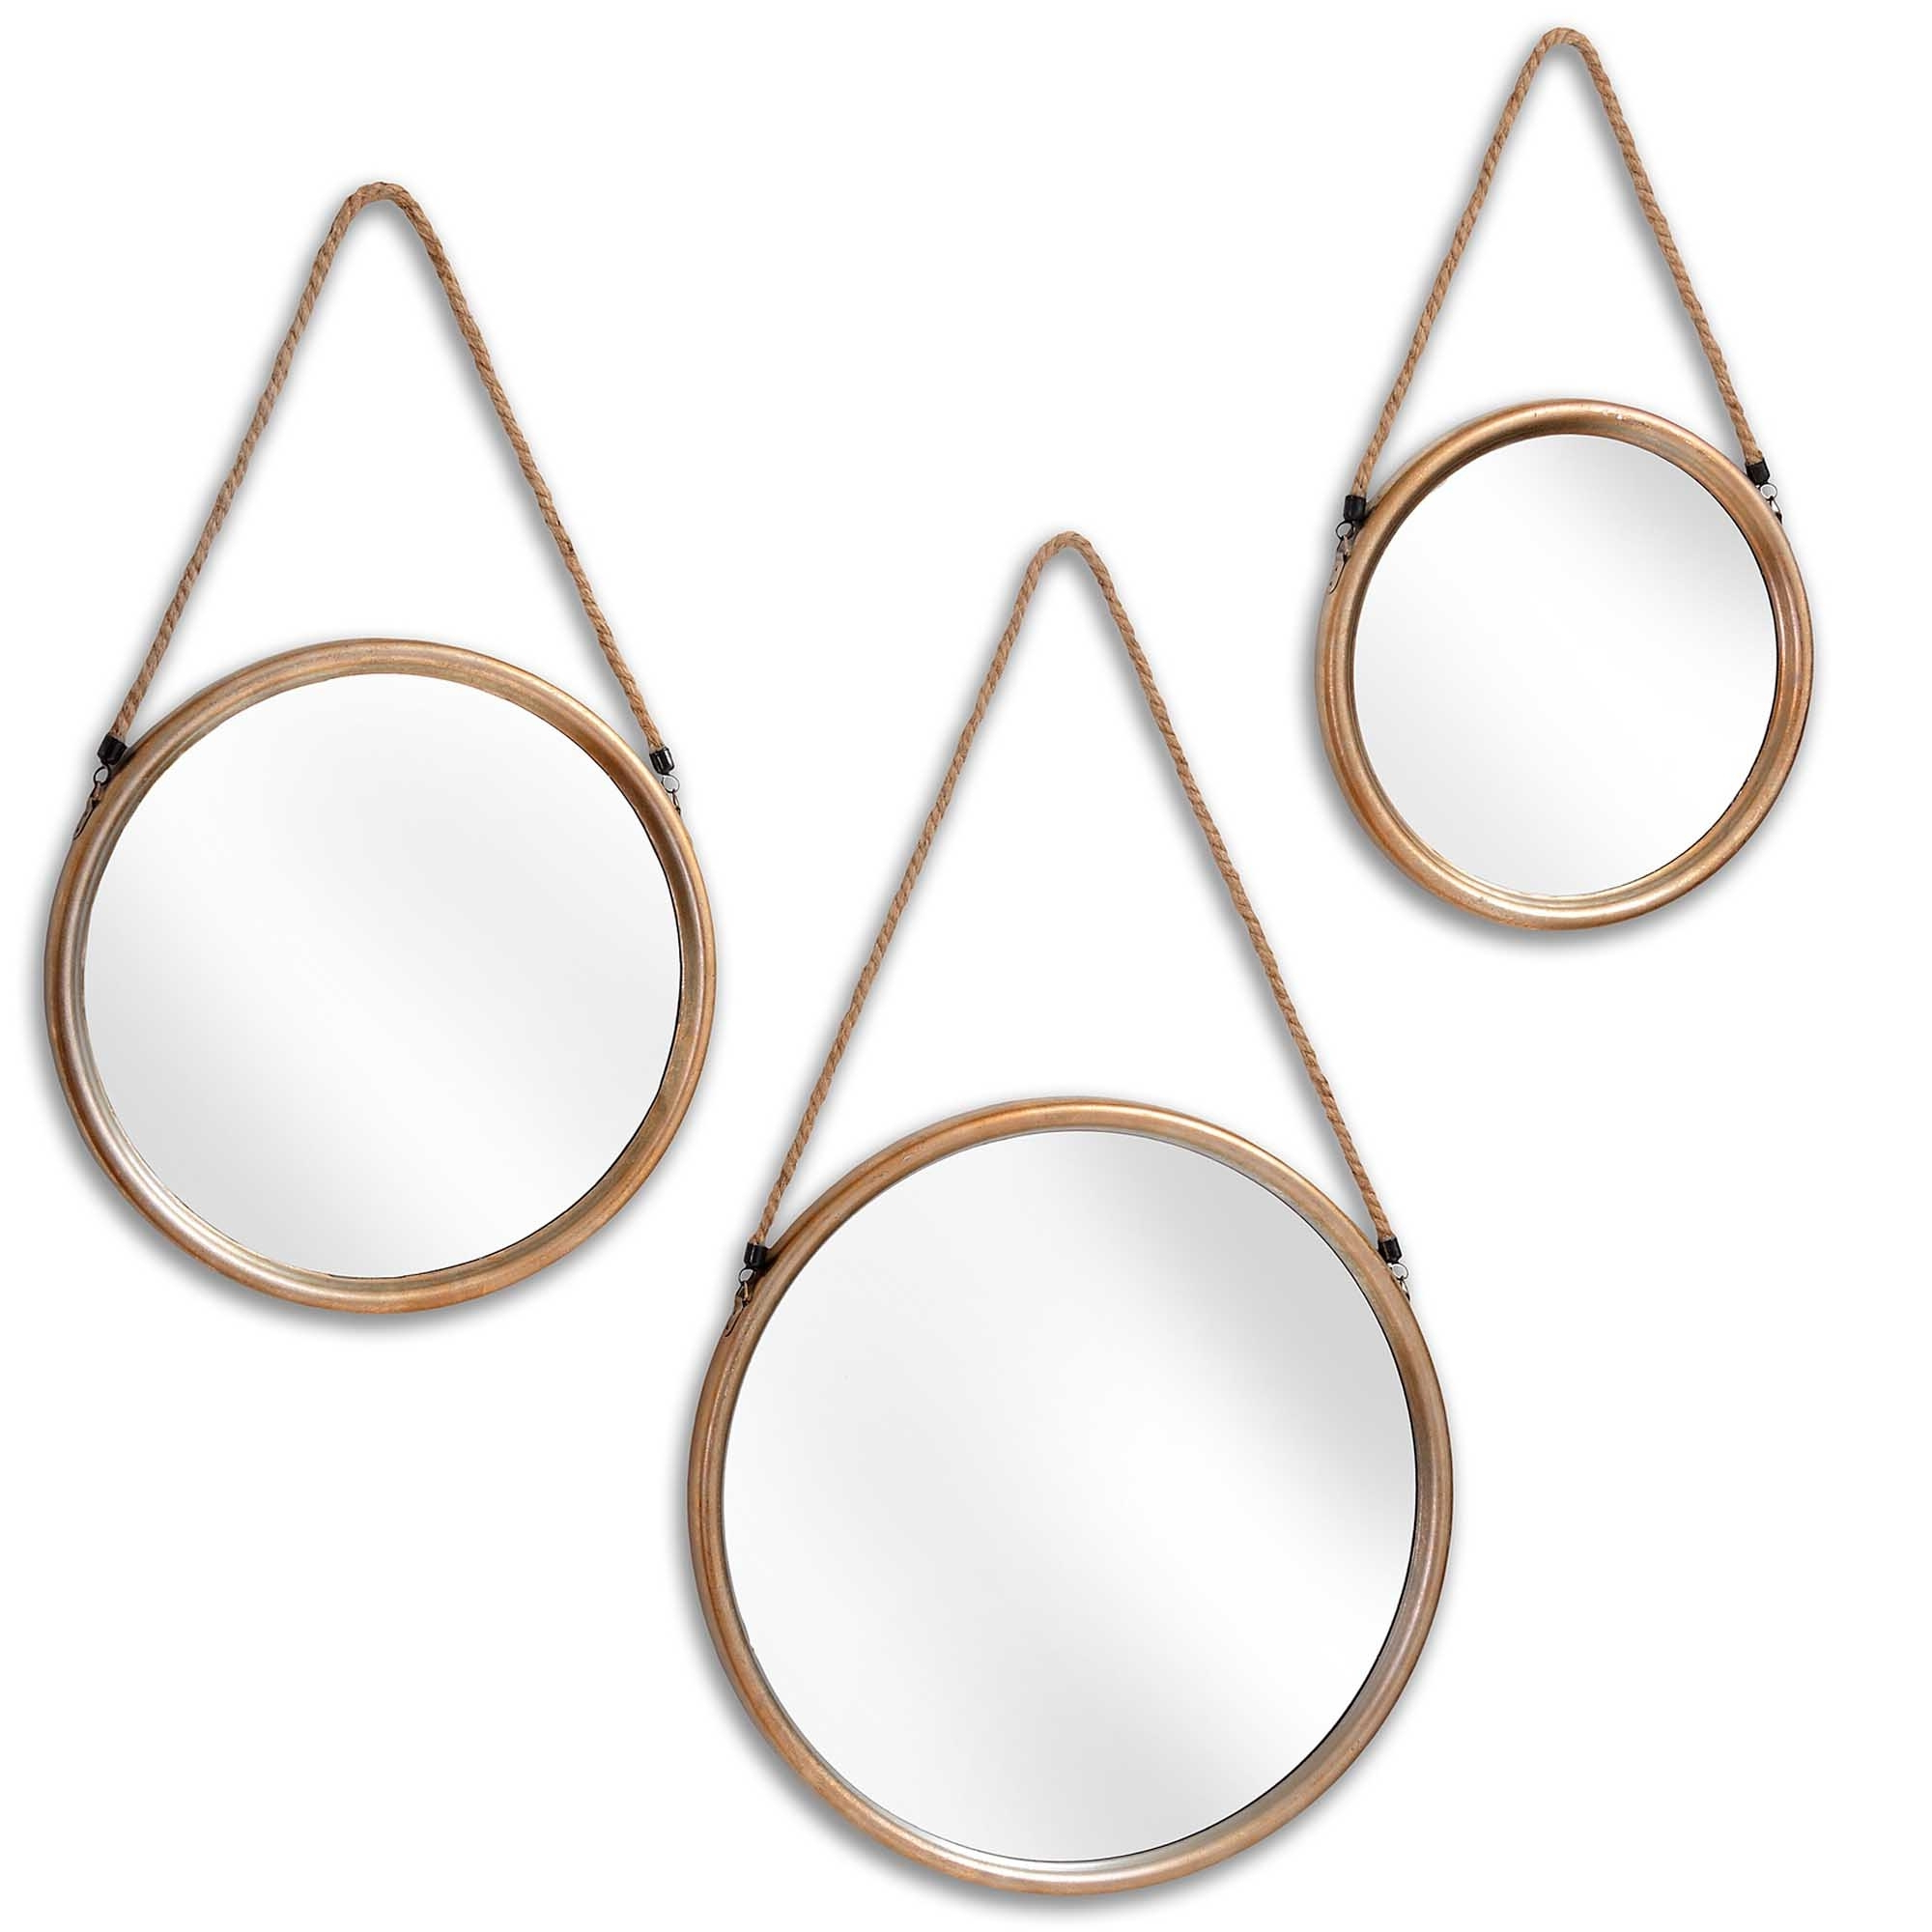 Most Current Hanging Wall Mirrors With Regard To Set Of 3 Hanging Round Gold Wall Mirrors (View 8 of 20)